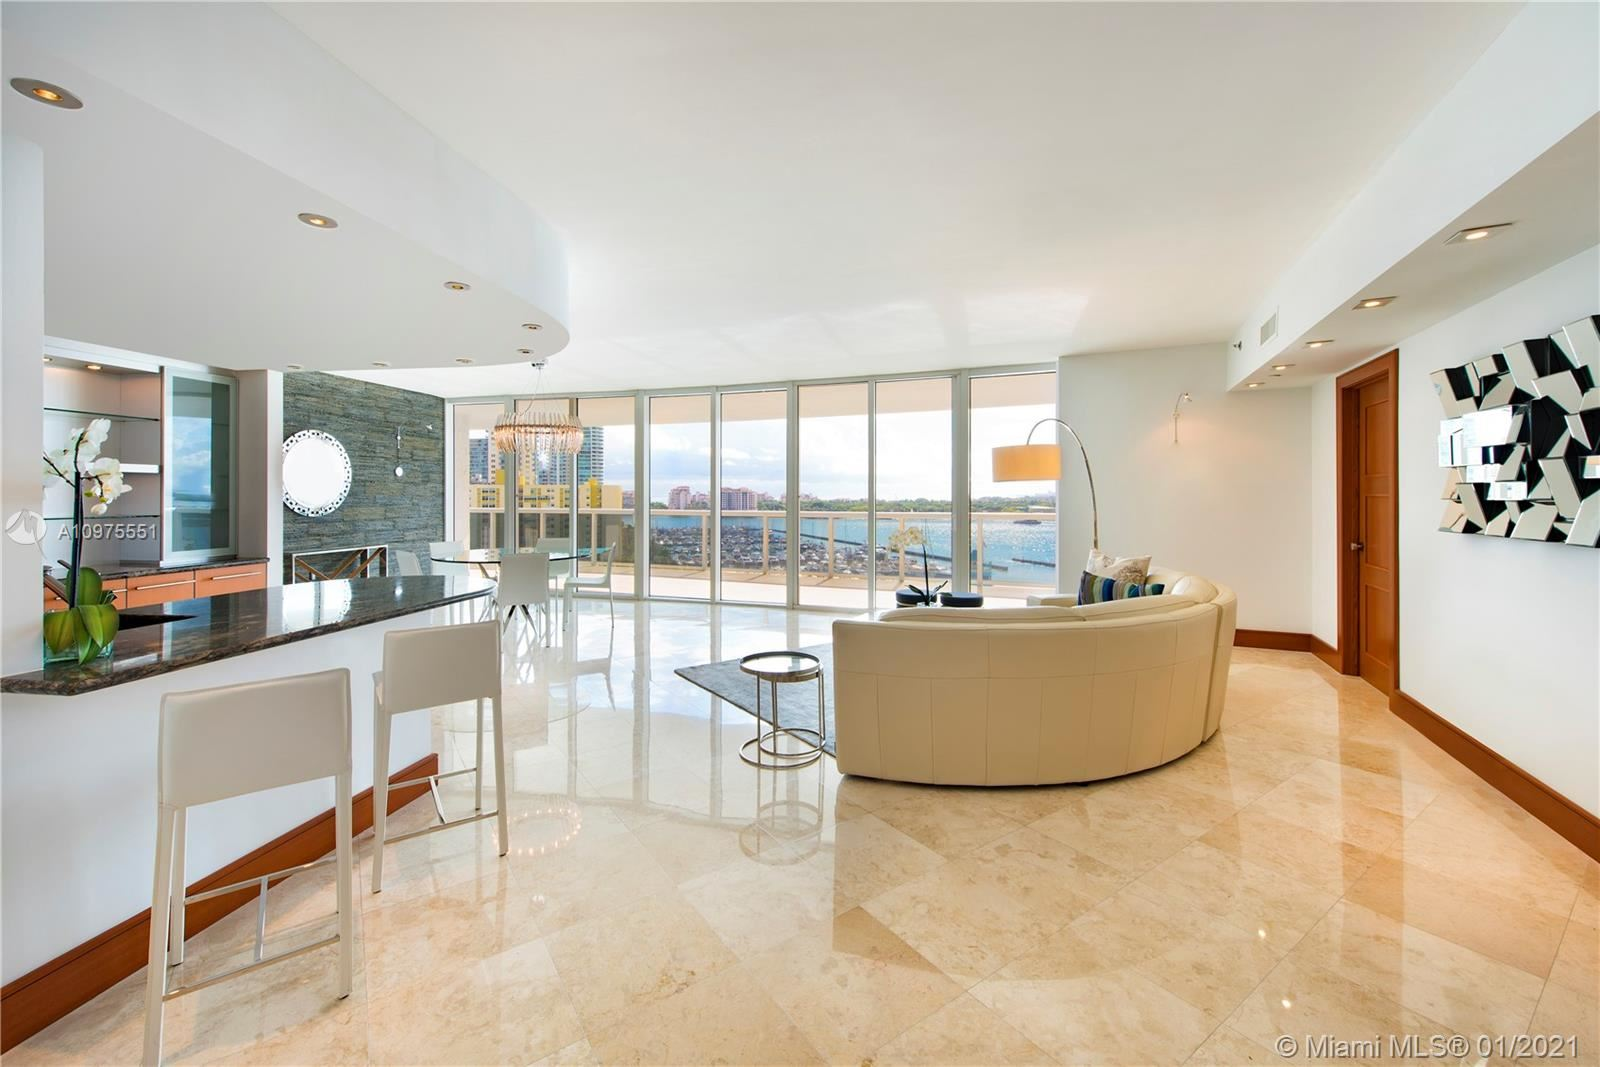 400 ALTON RD #1106, Miami Beach, FL 33139 - #: A10975551